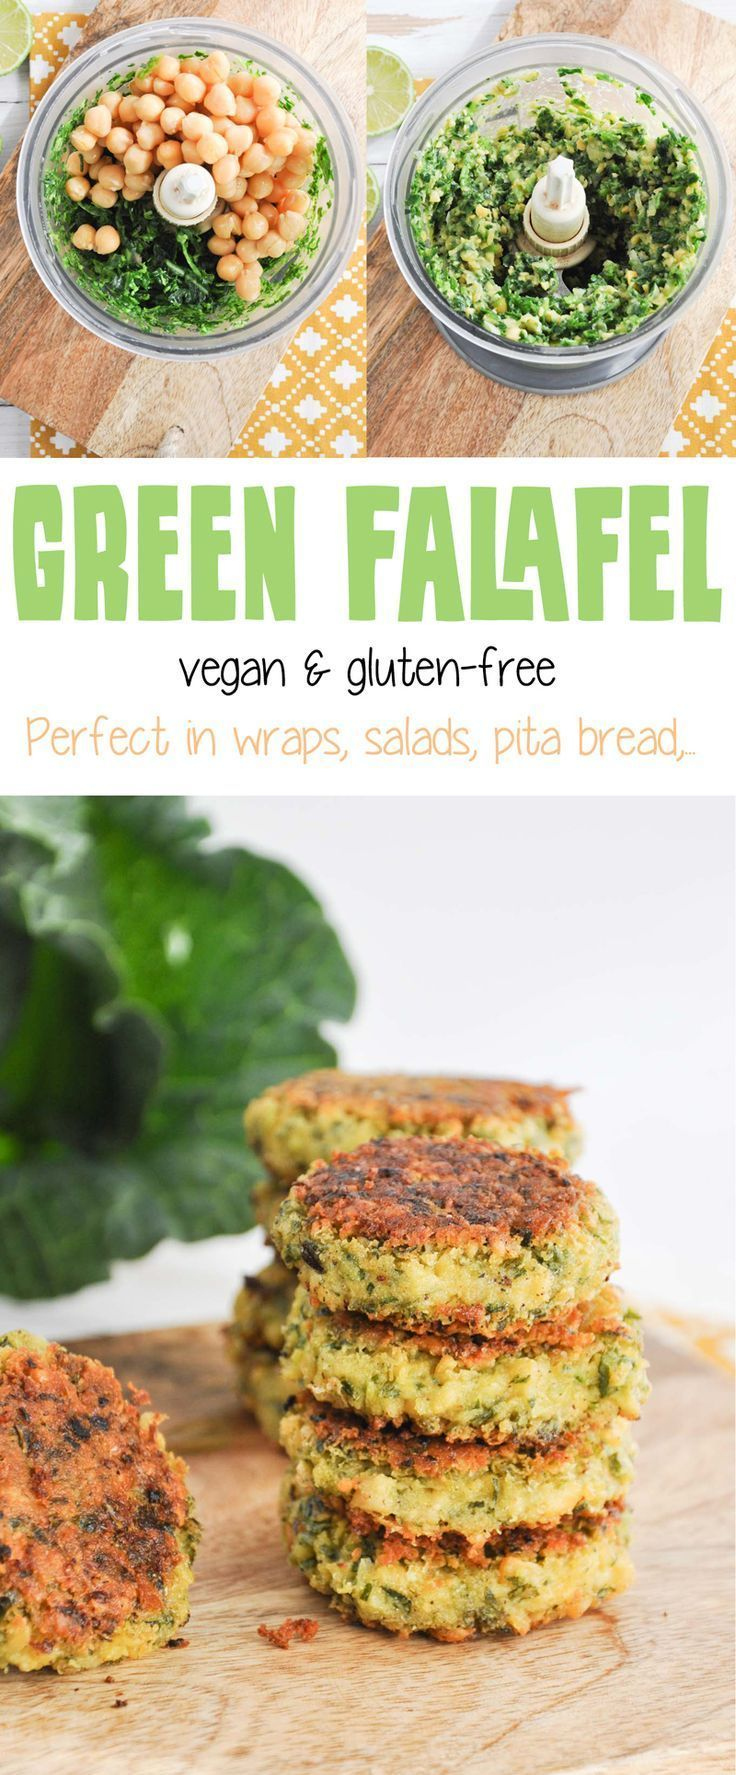 @elephantasticv delivers a vegan falafel recipe - Yeeha!